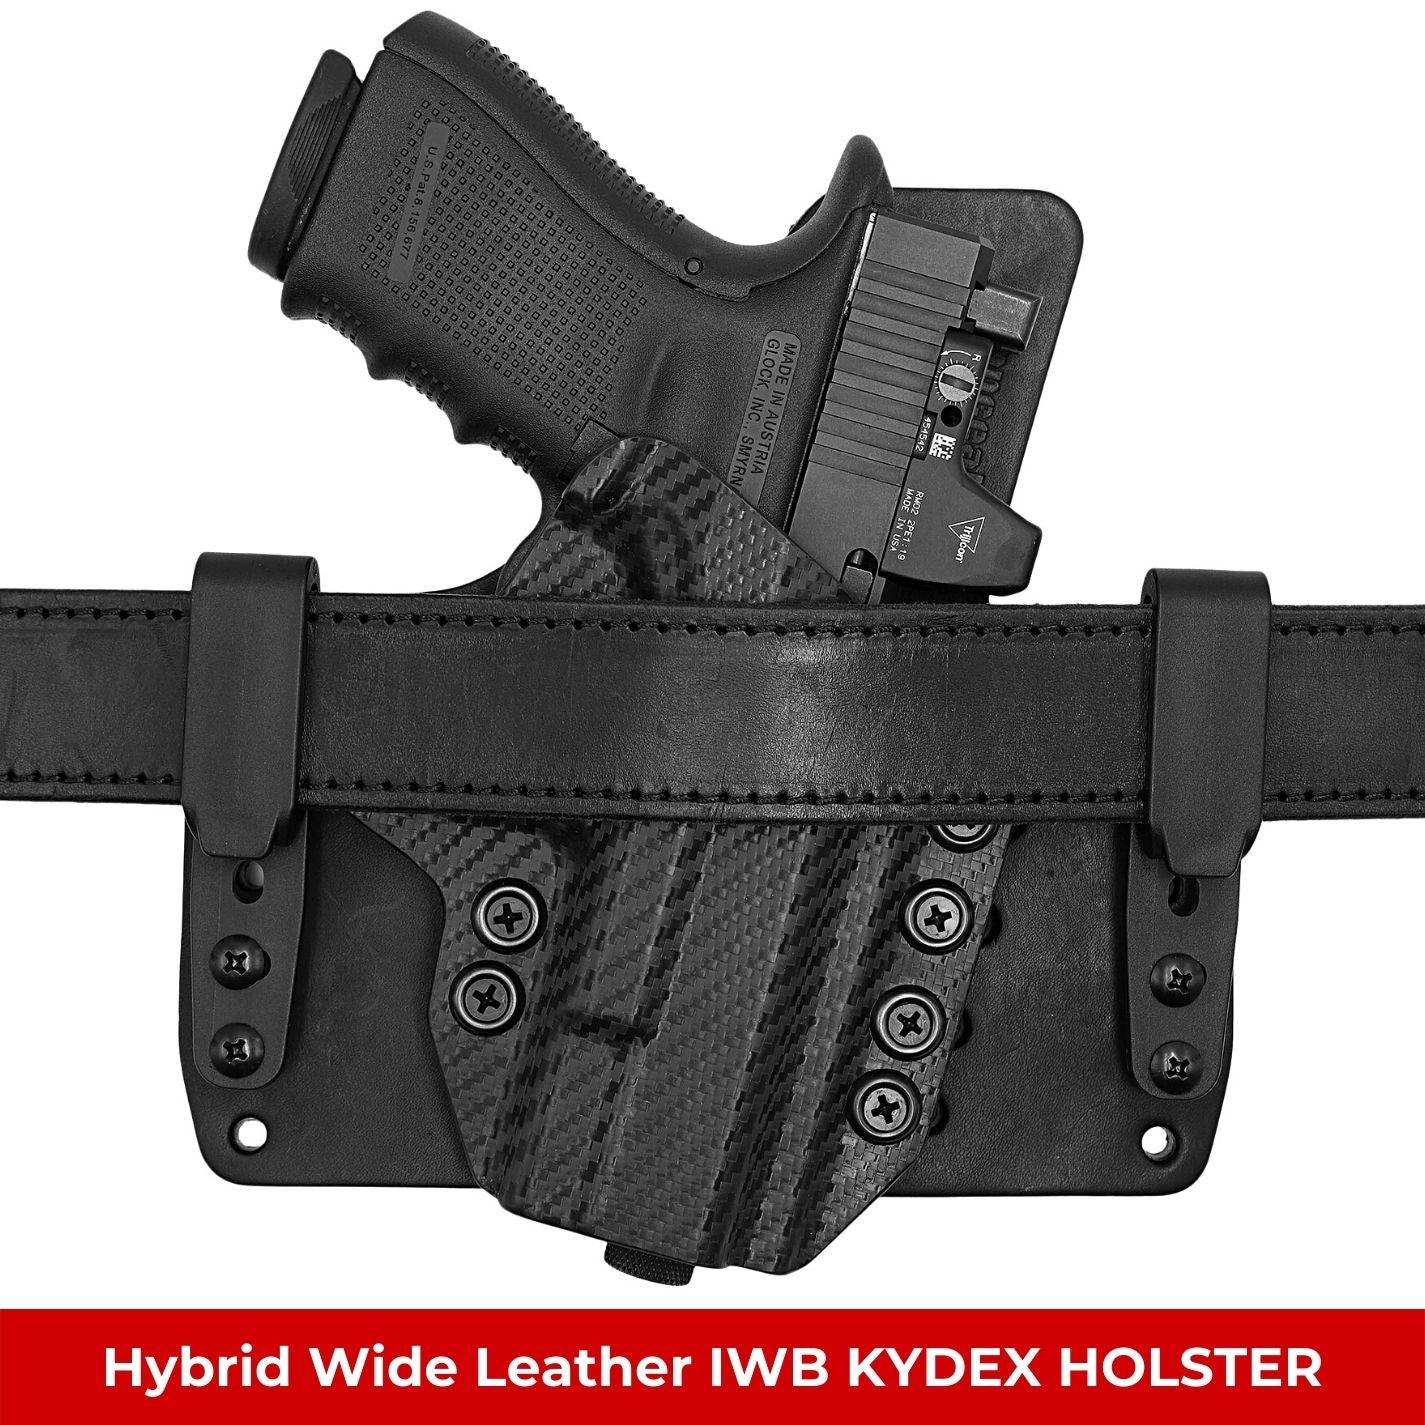 Hybrid Wide Leather IWB KYDEX Holsters